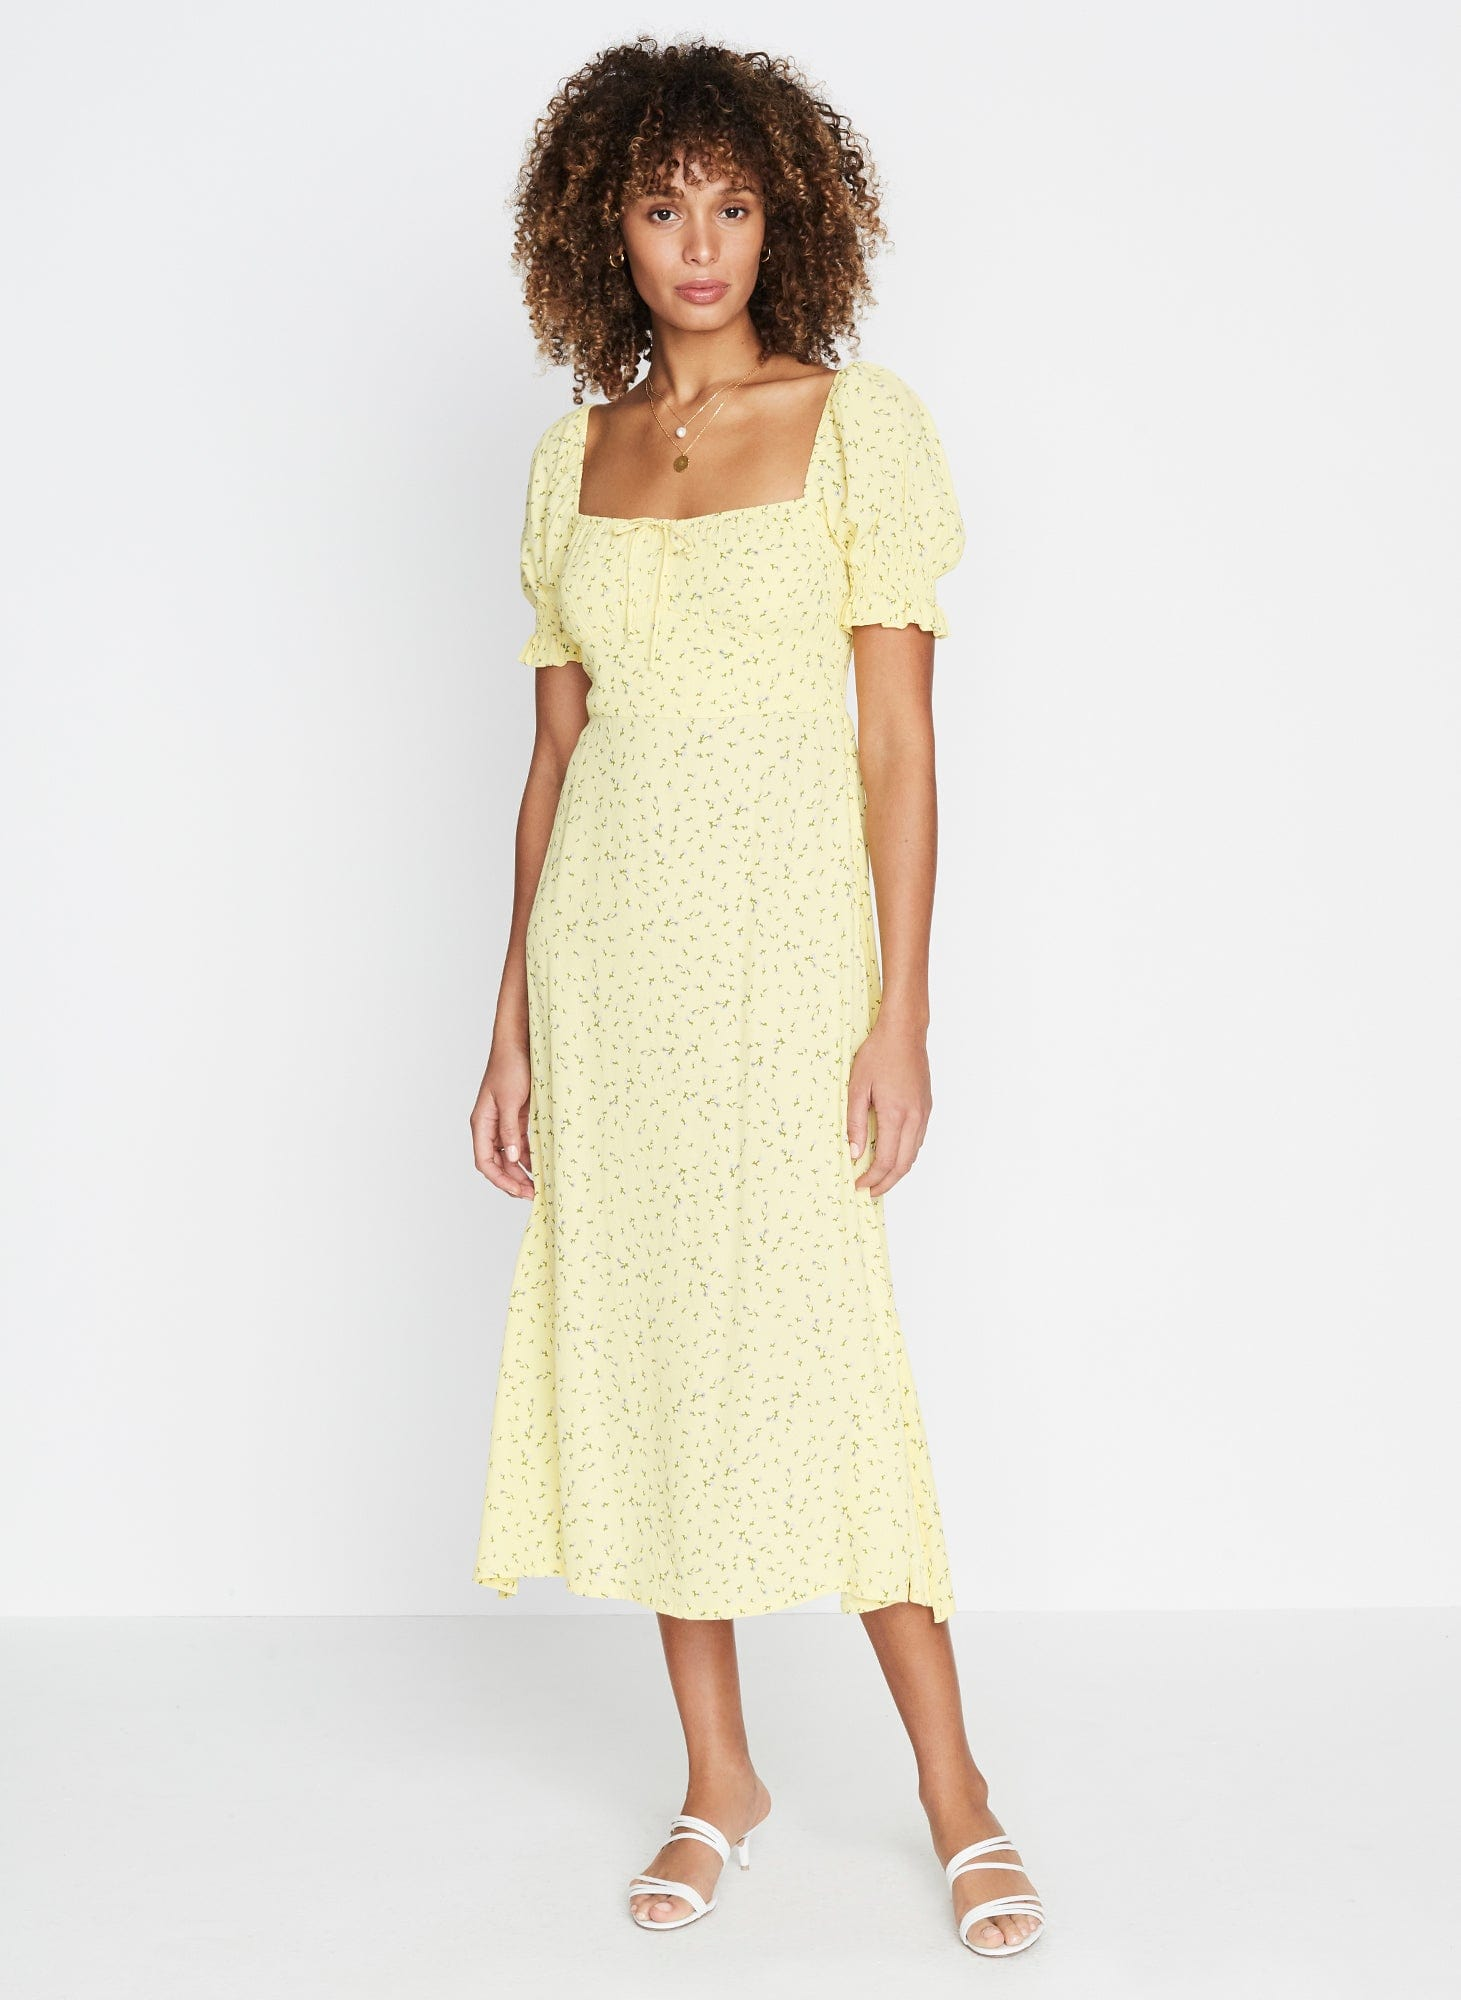 LA FICA FLORAL PRINT - EVELYN MIDI DRESS